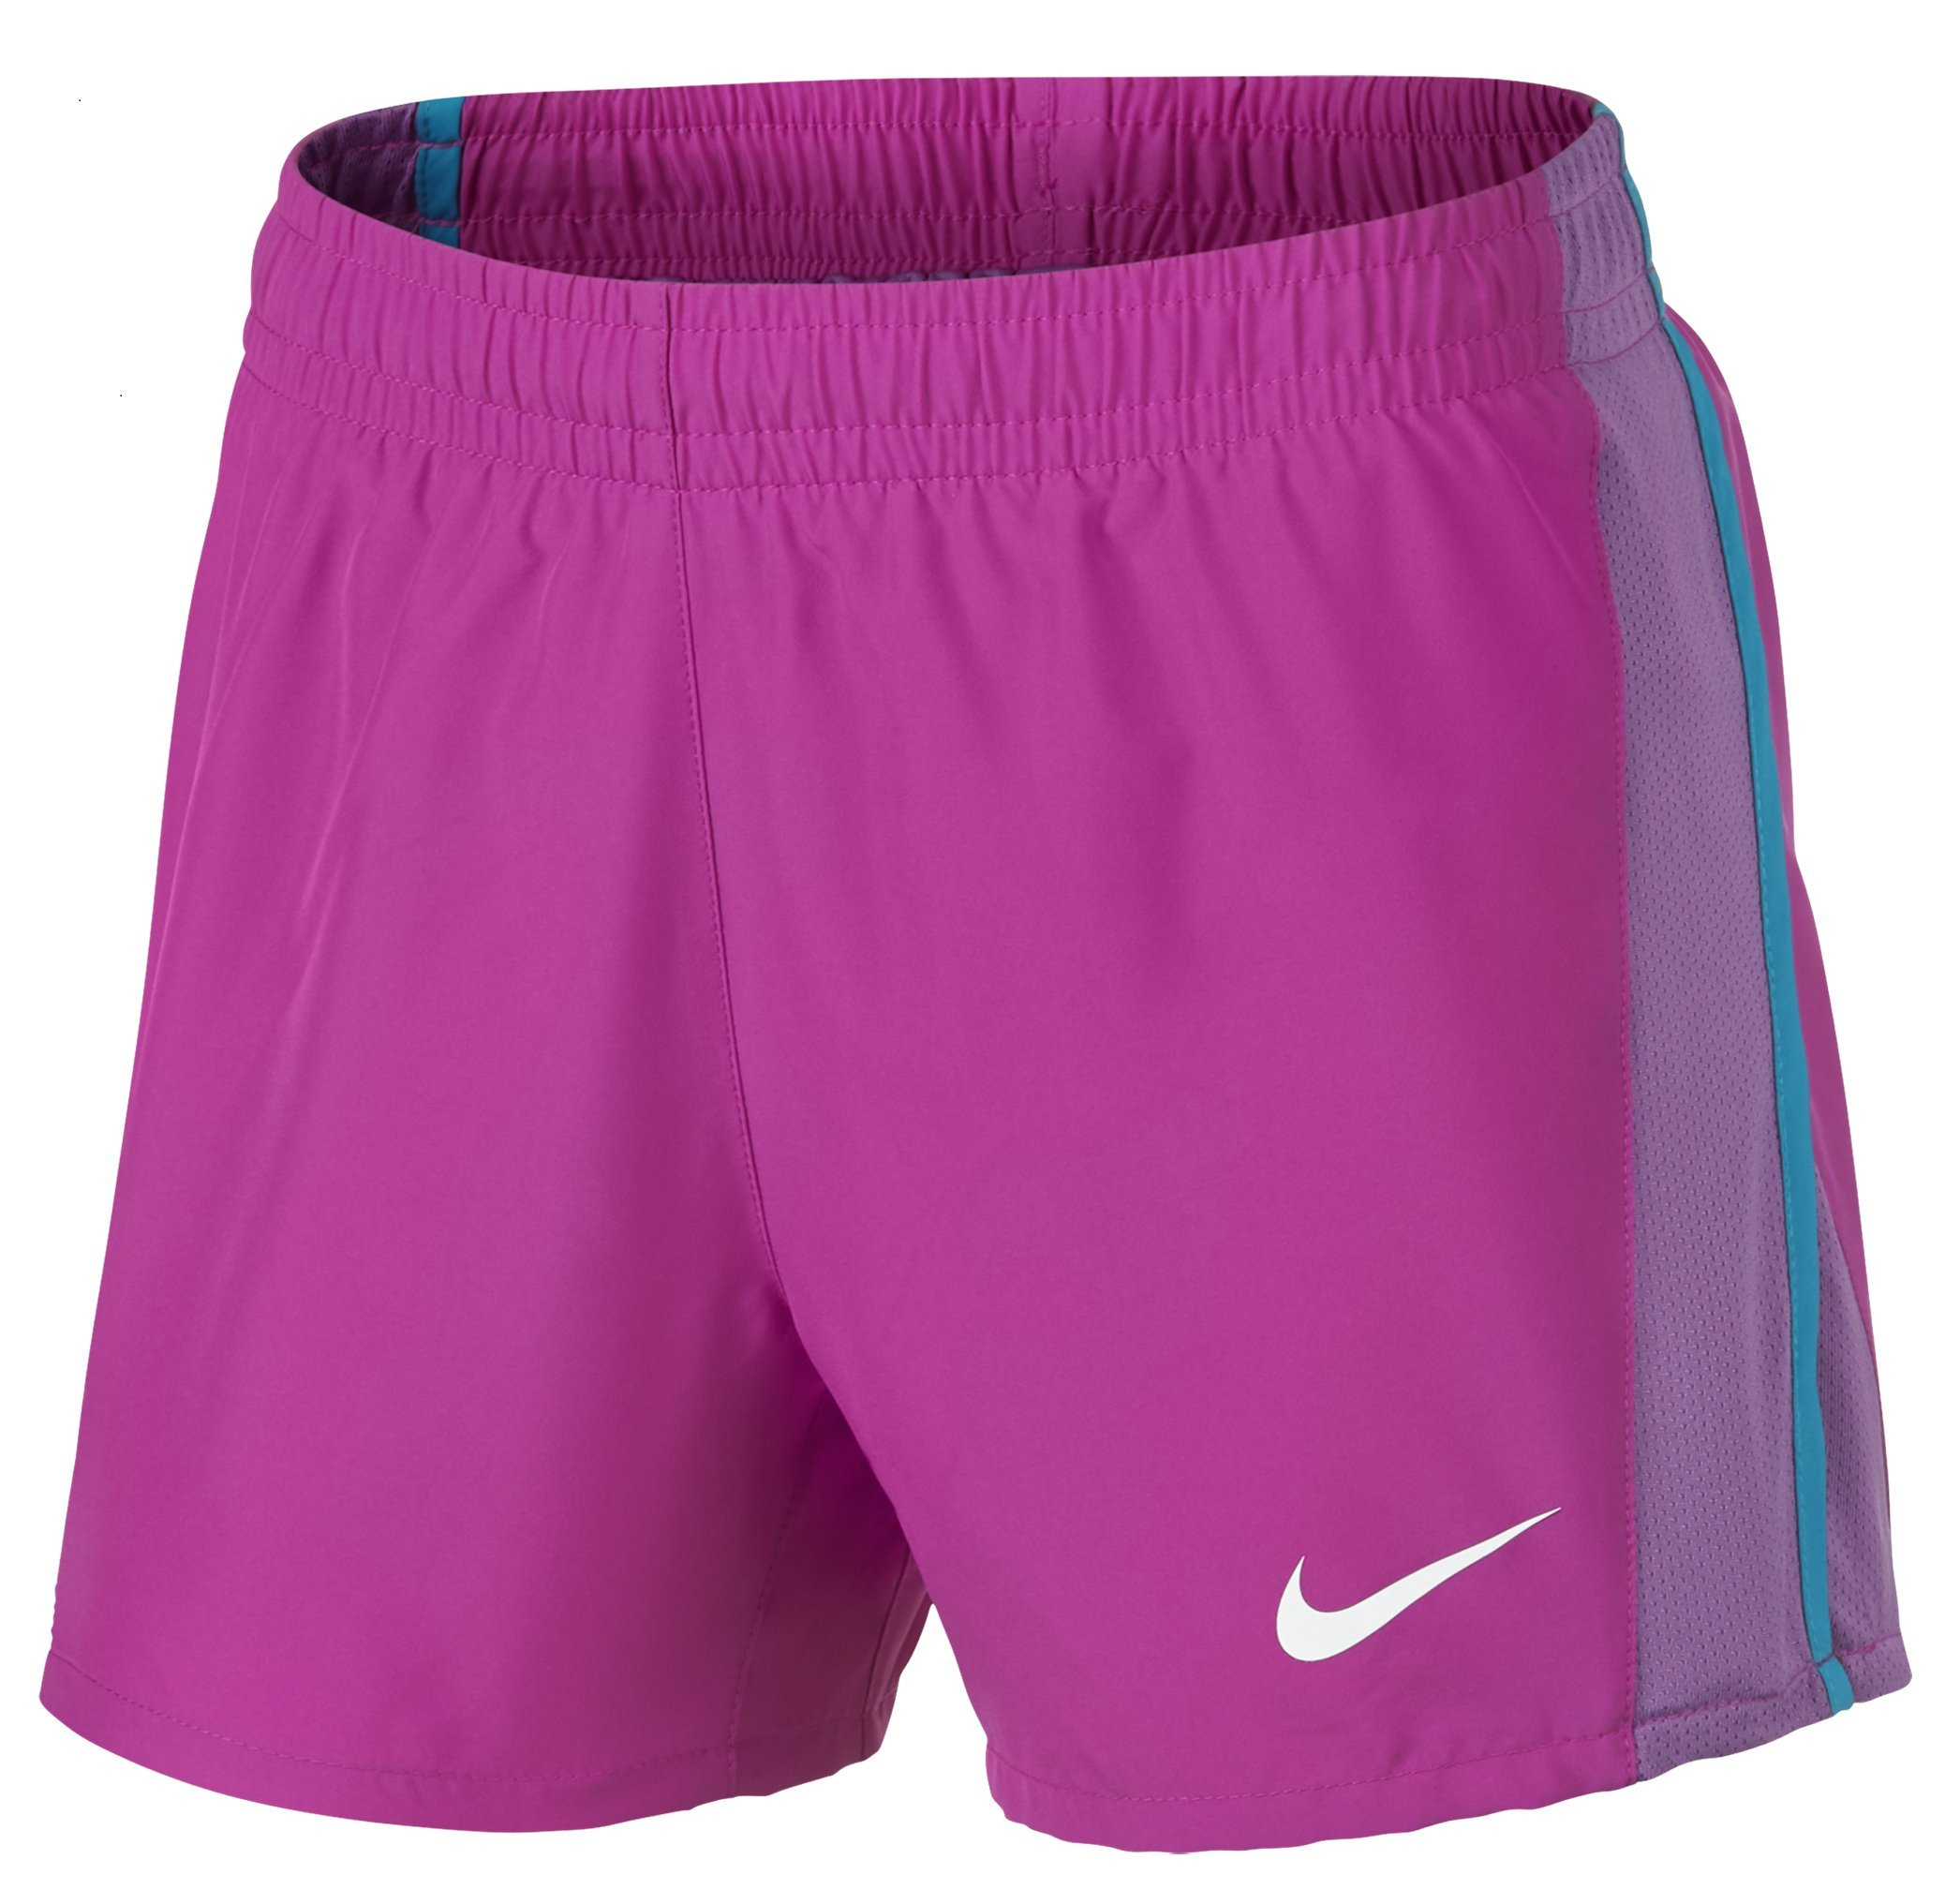 NIKE Girls' Dry 10K Running Shorts, Hyper Magenta/Dark Orchid/Neo Turquoise, X-Small by Nike